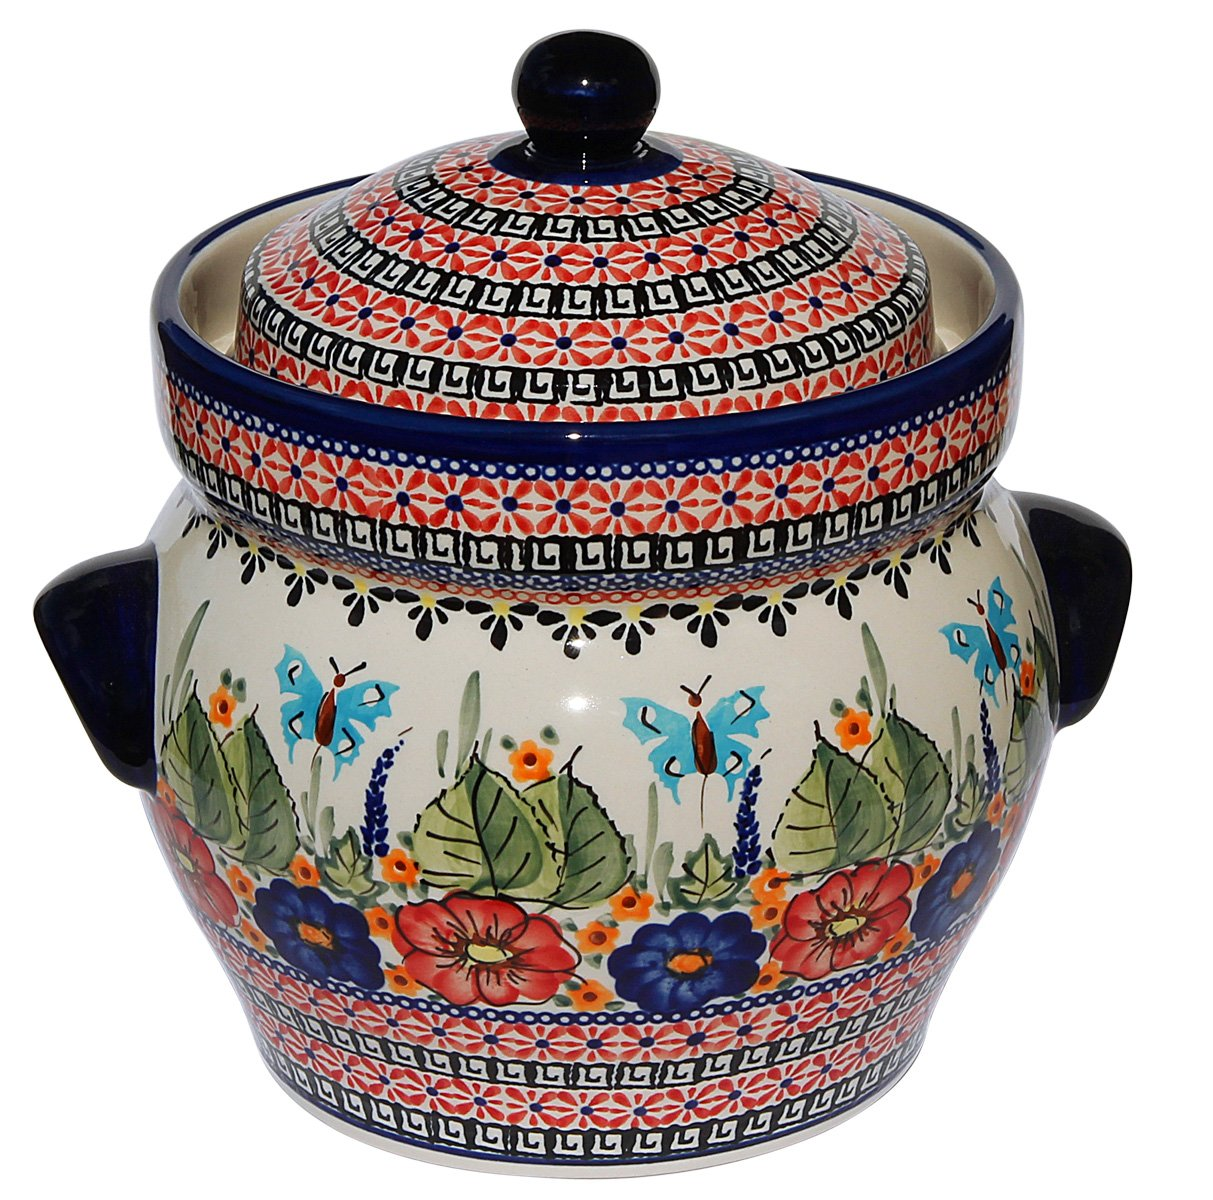 Polish Pottery Fermenting Crock Pot From Zaklady Ceramiczne Boleslawiec #1126-149 Art Signature Pattern, Height: 7.25'', Capacity: 15 Cups